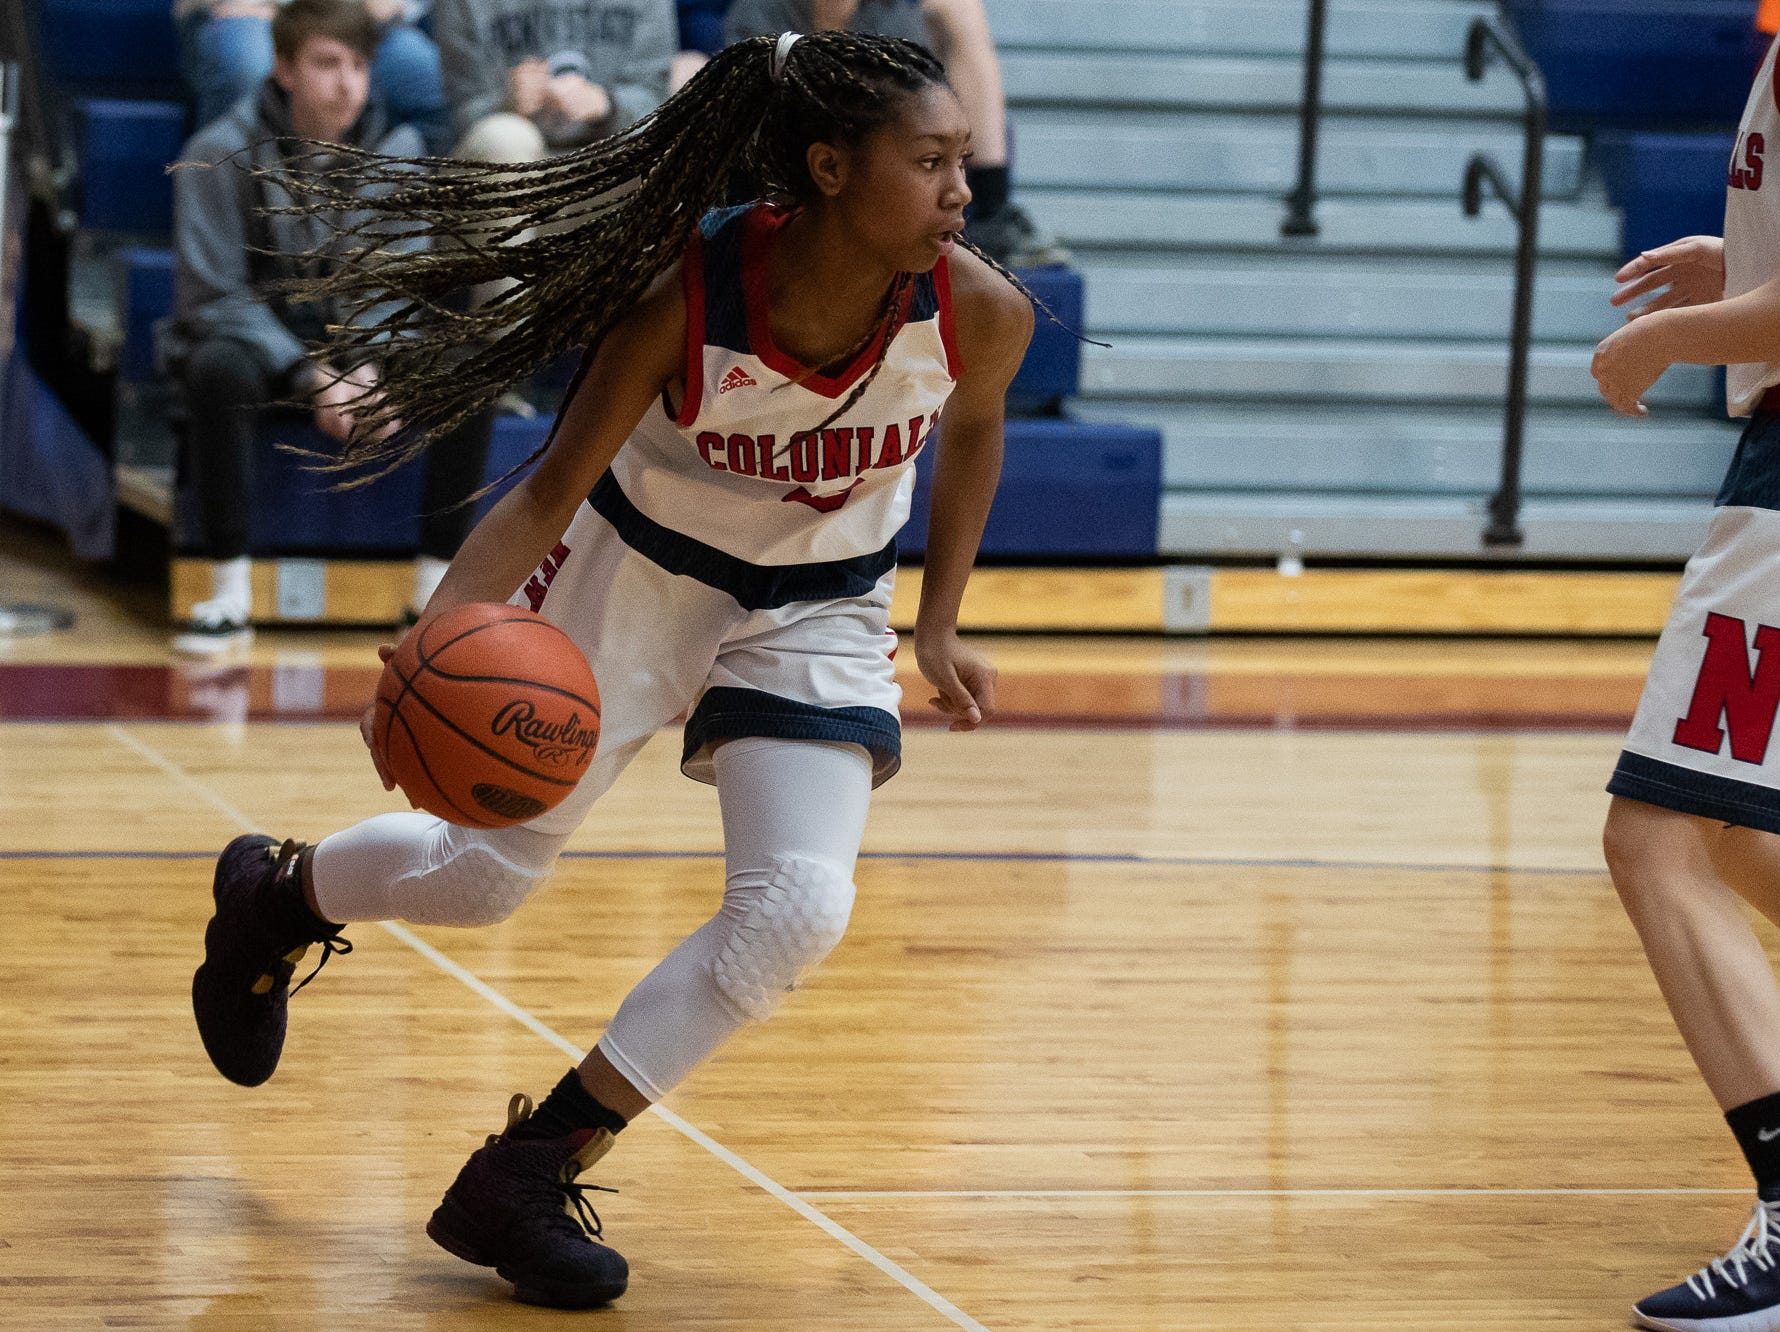 New Oxford's Jayla Brown (10) dribbles the ball during the championship game between New Oxford and Gettysburg at the New Oxford Girls Basketball Tip-Off Tournament, Saturday, Dec. 8, 2018, in New Oxford. The Gettysburg Lady Warriors defeated the New Oxford Lady Colonials 47-40.